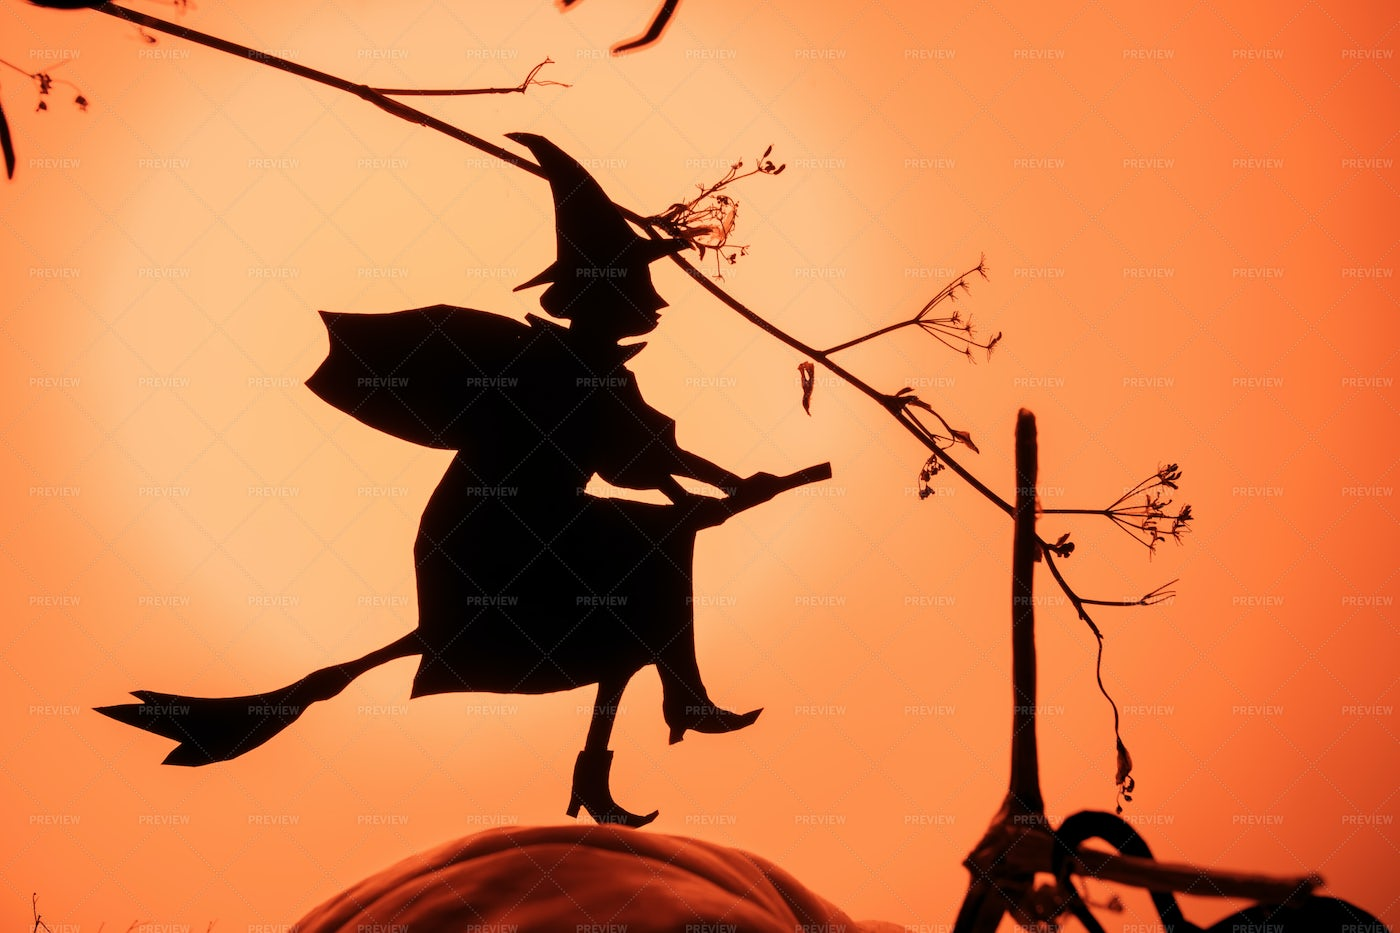 Black Paper Witch Halloween Silhouette: Stock Photos